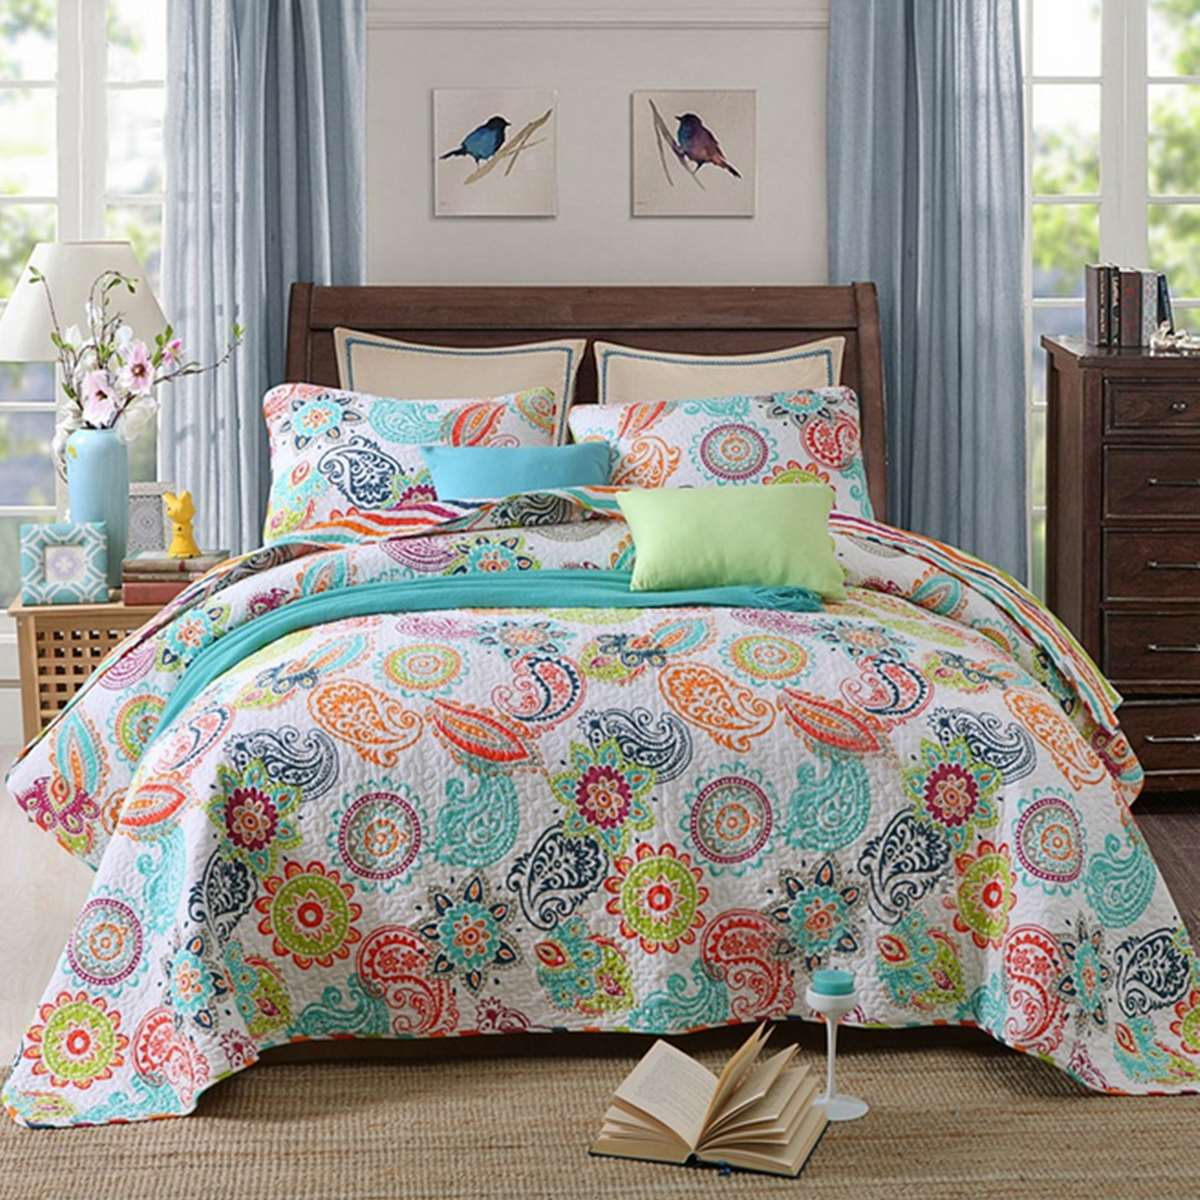 Paisley Bedroom Online Buy Wholesale Paisley Print Bedding From China Paisley